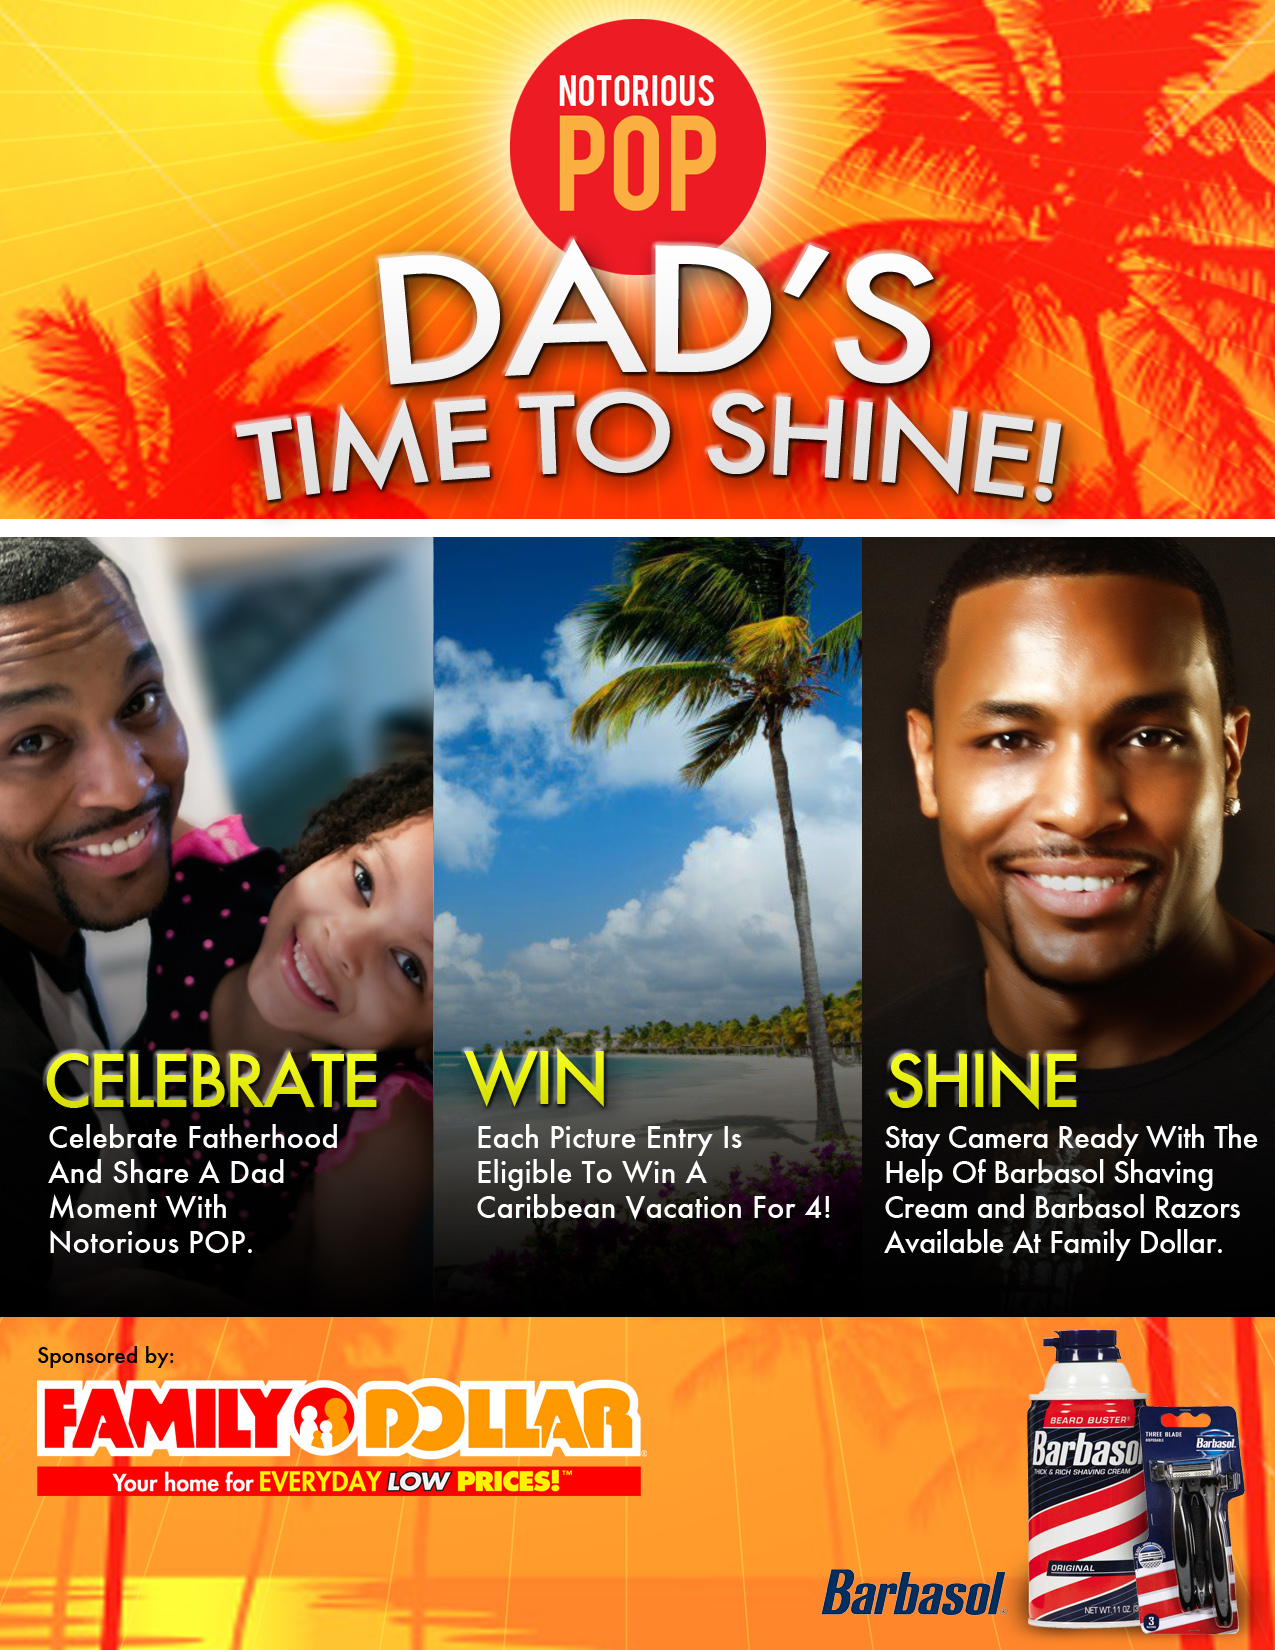 Help Celebrate Fathers & Win with @TheNotoriousPop #FamilyDollarBarbasol Twitter Party 6/12